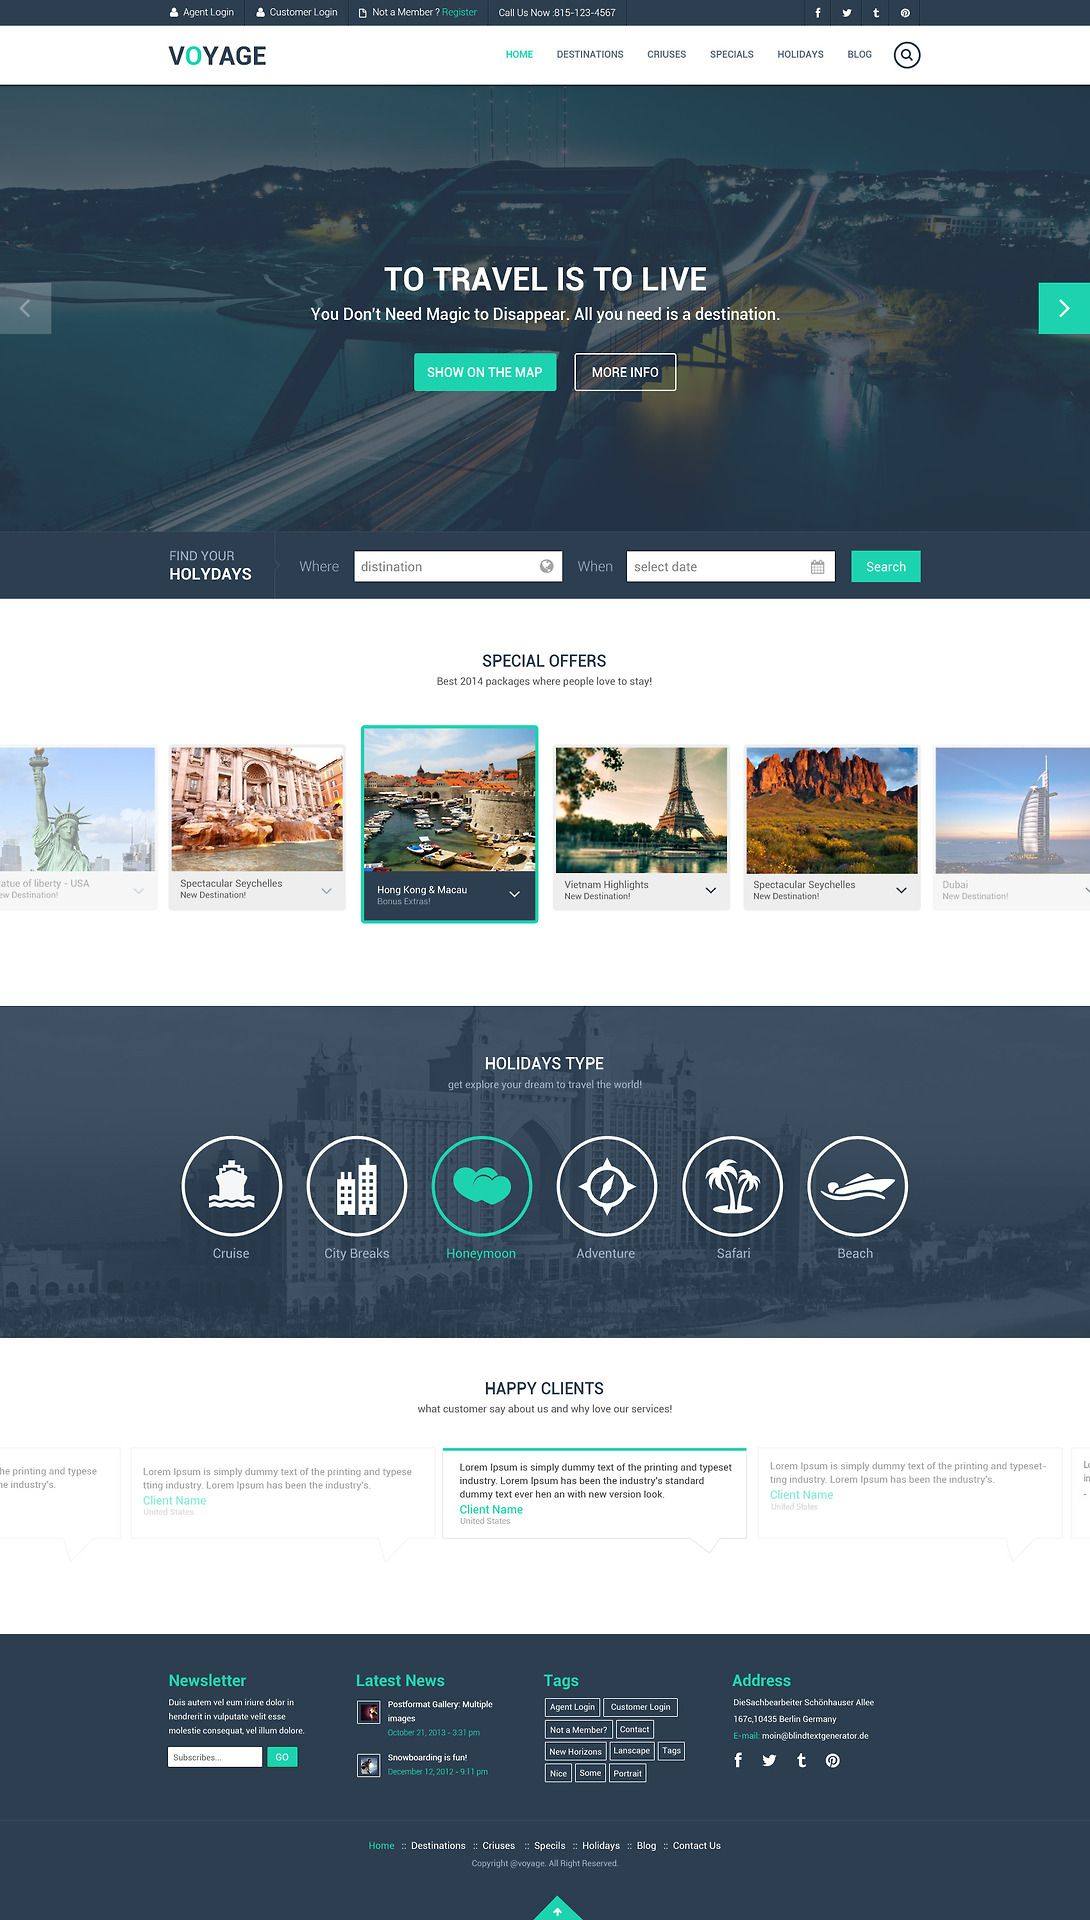 Website Templates Free Travel Website Template Psd  Graphic Design  Pinterest